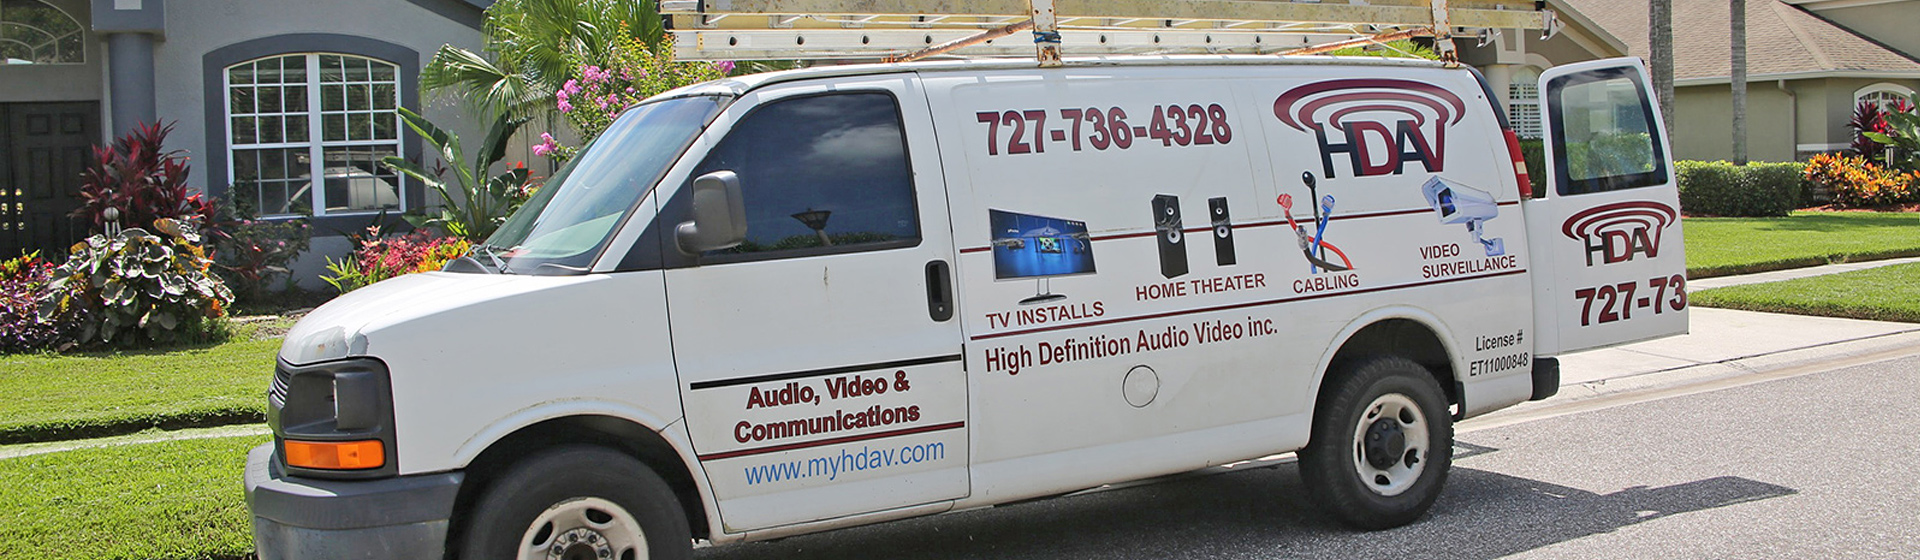 TV and Wiring Installers | Tampa Bay | High Definition Audio Video, Inc.